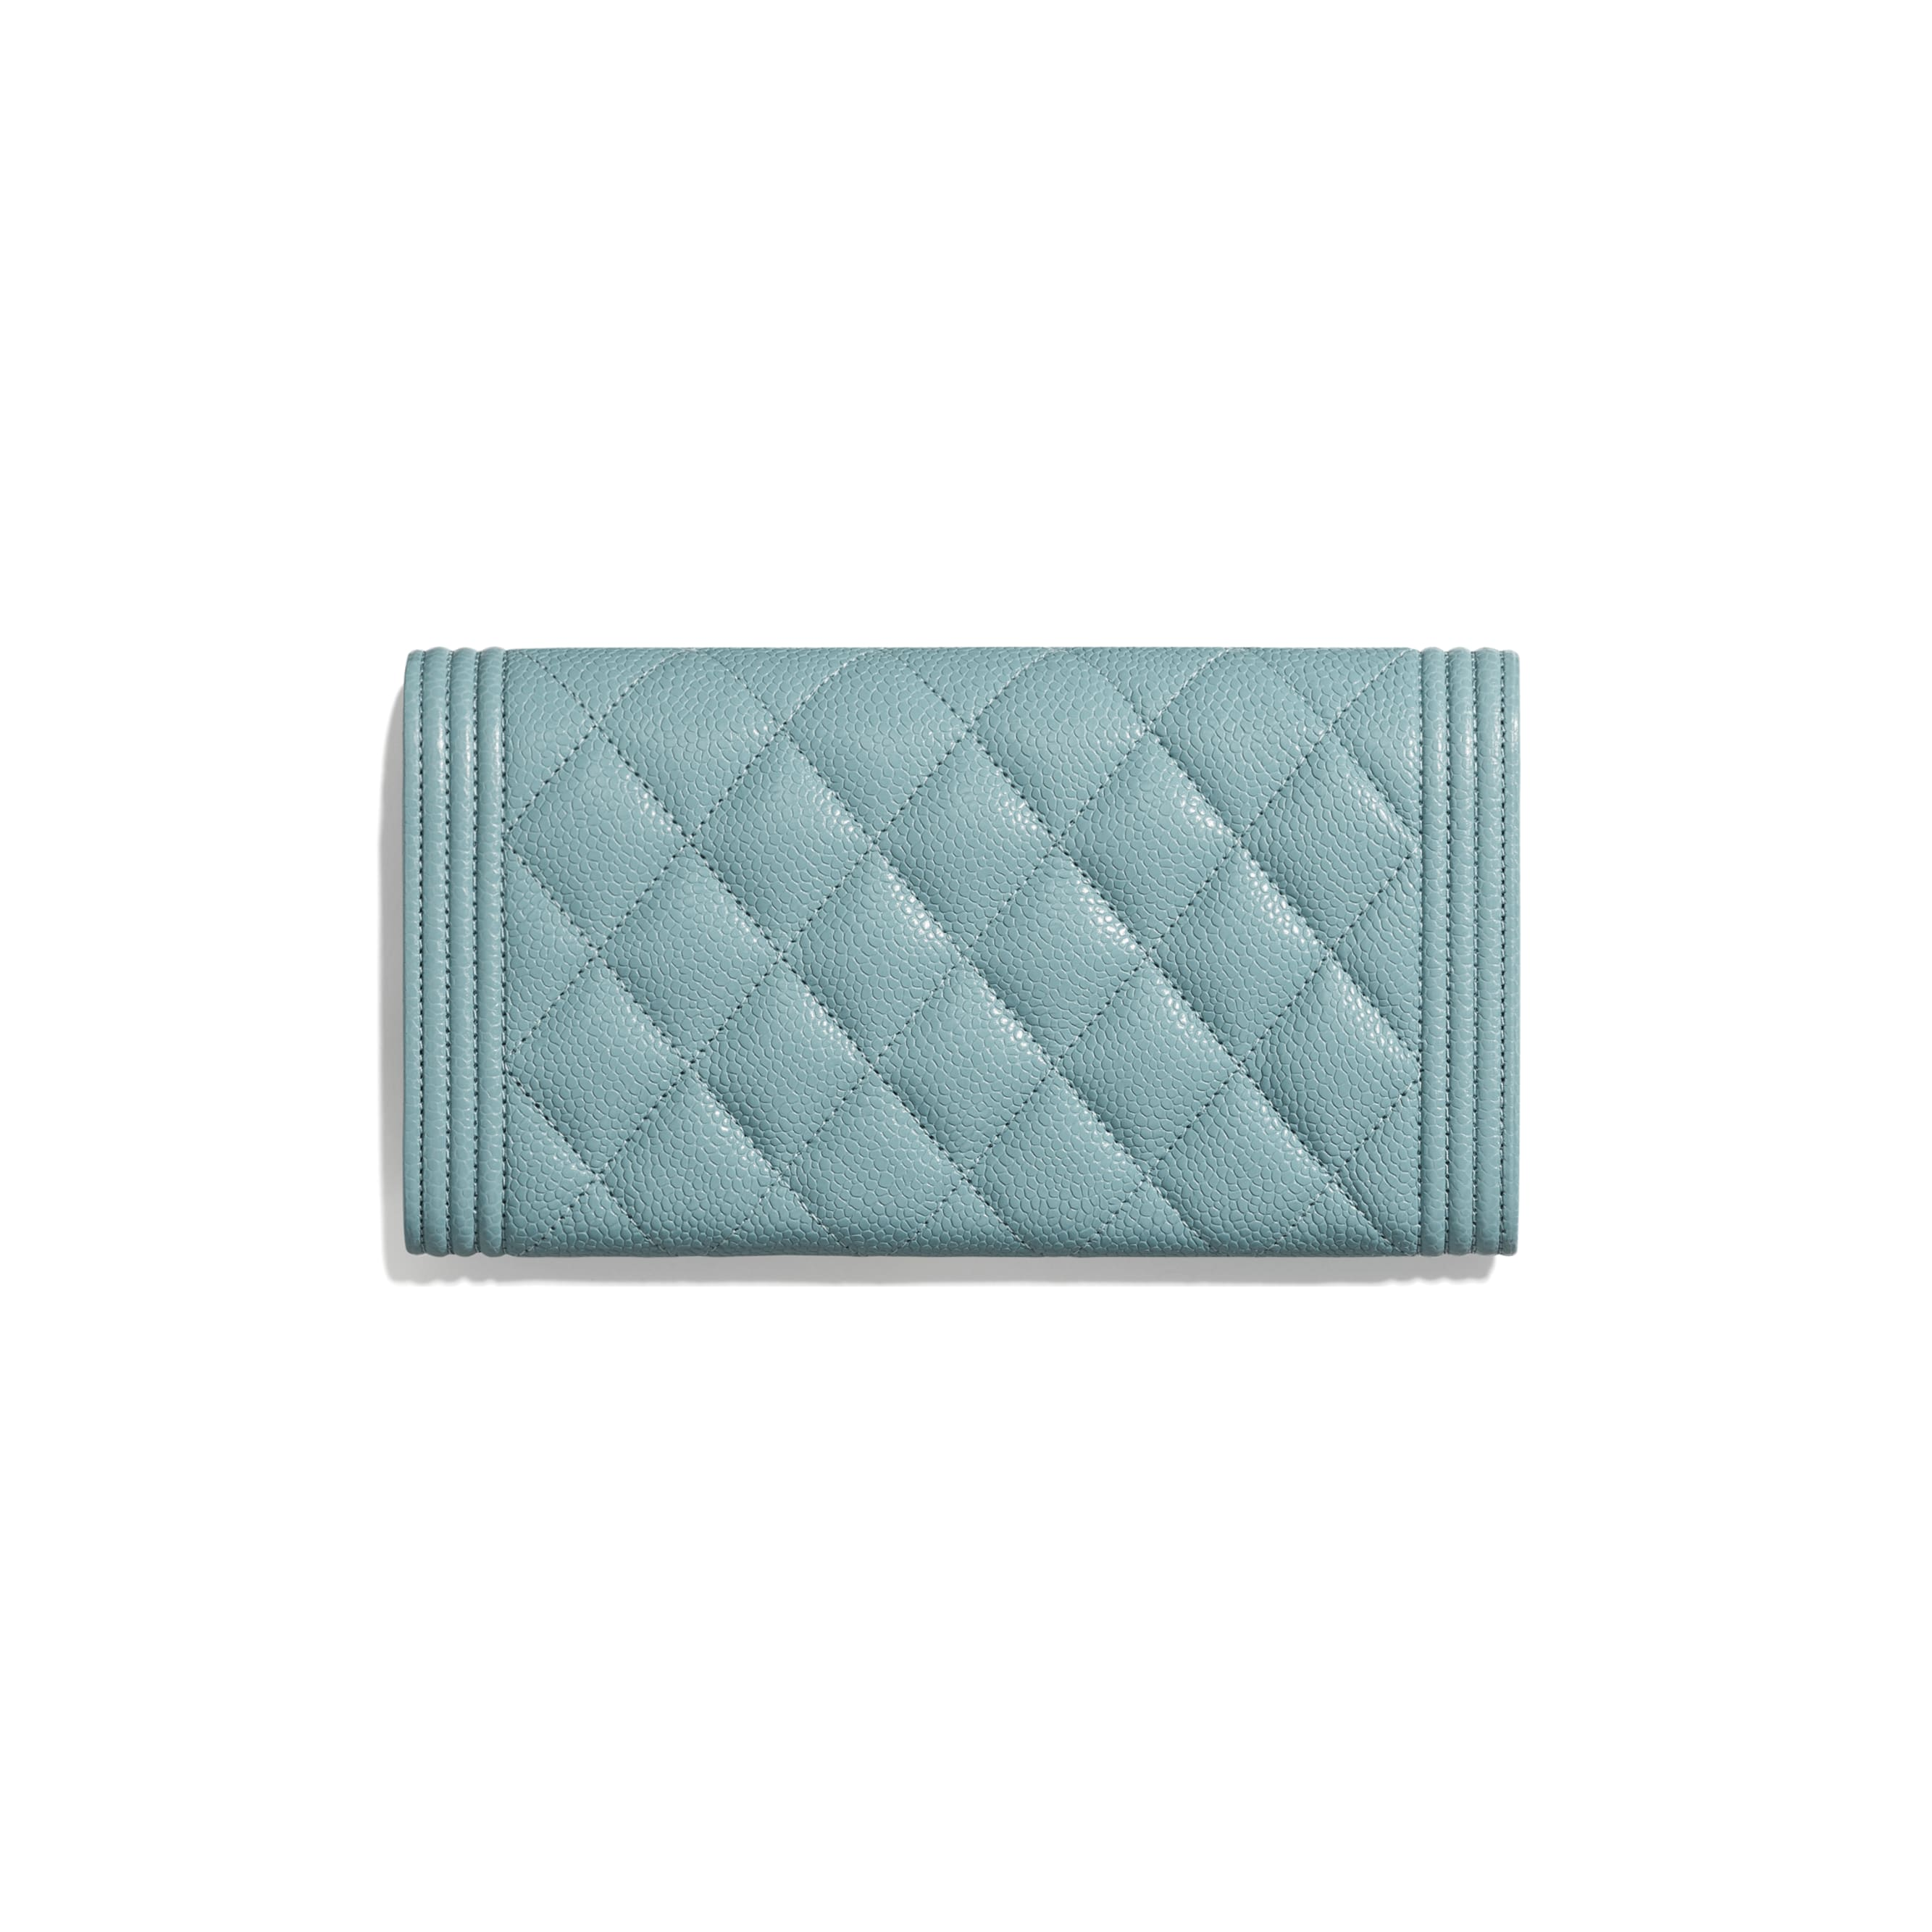 BOY CHANEL Long Flap Wallet - Blue - Grained Shiny Calfskin & Gold-Tone Metal - Alternative view - see standard sized version